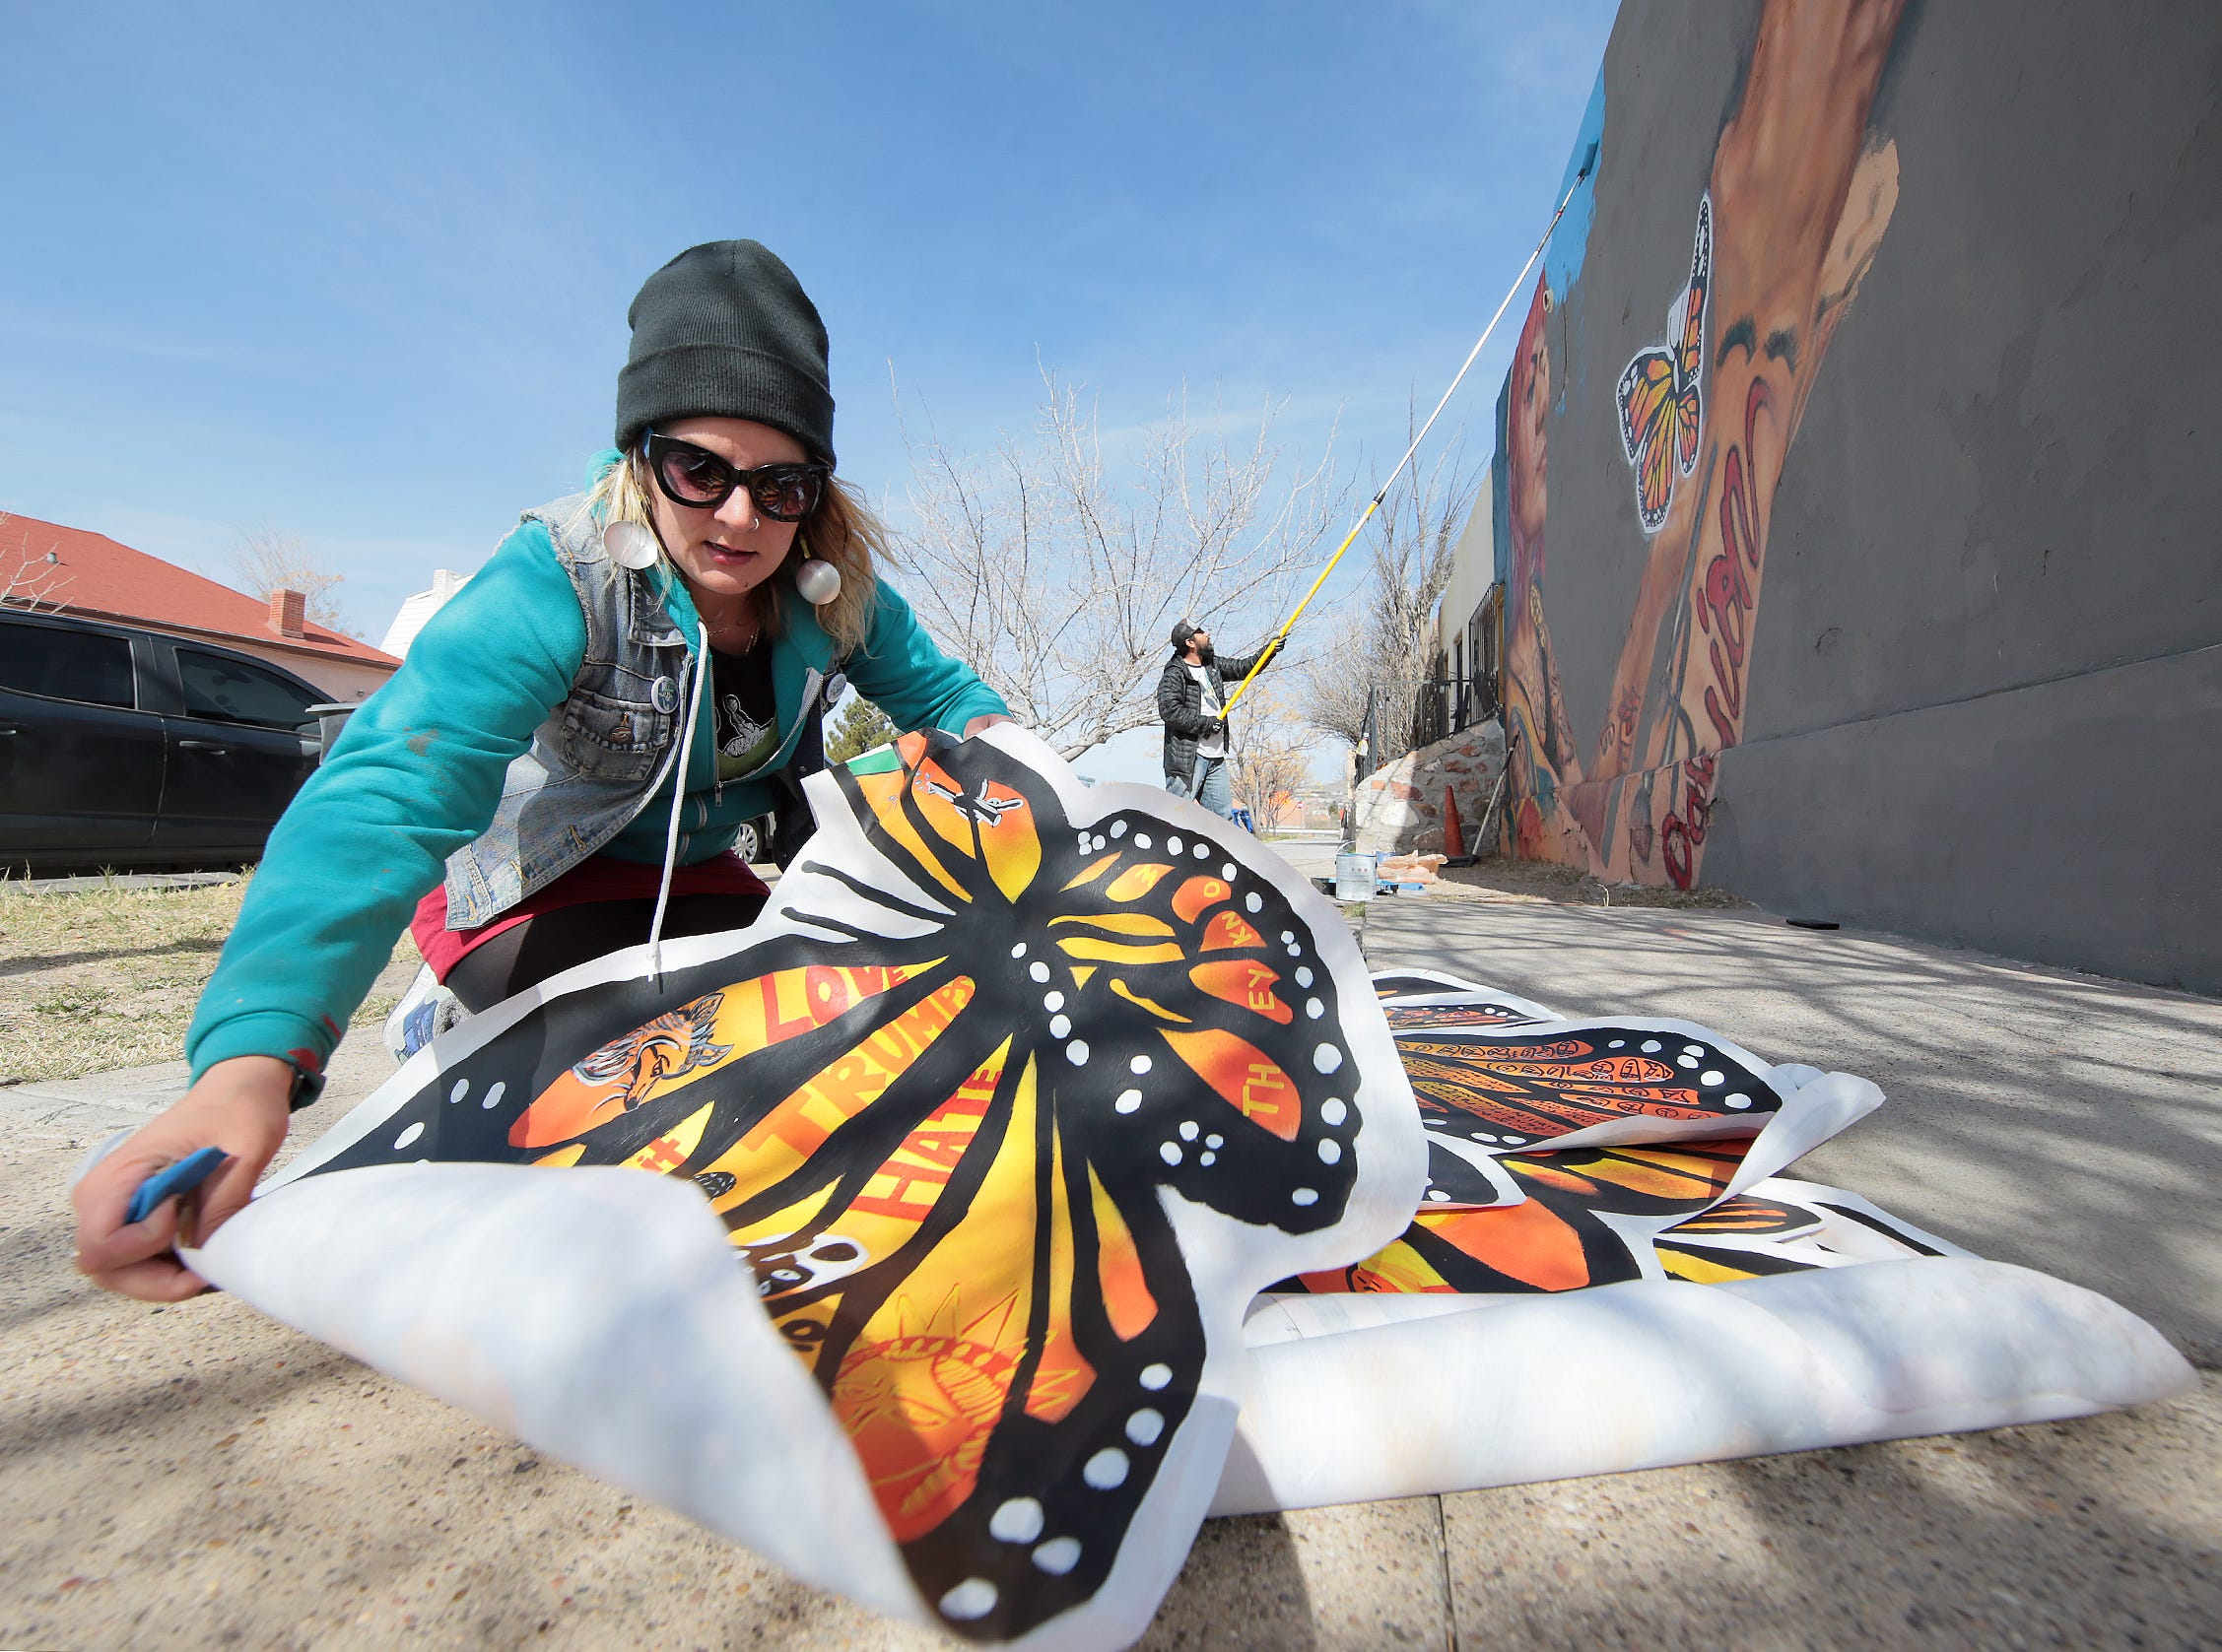 """The mural will show butterflies being released into a bright sky. It references the poem, """"The Butterfly,"""" by Pavel Friedmann, who was sent to Auschwitz extermination camp in Poland, where he was killed Sept. 29, 1944."""